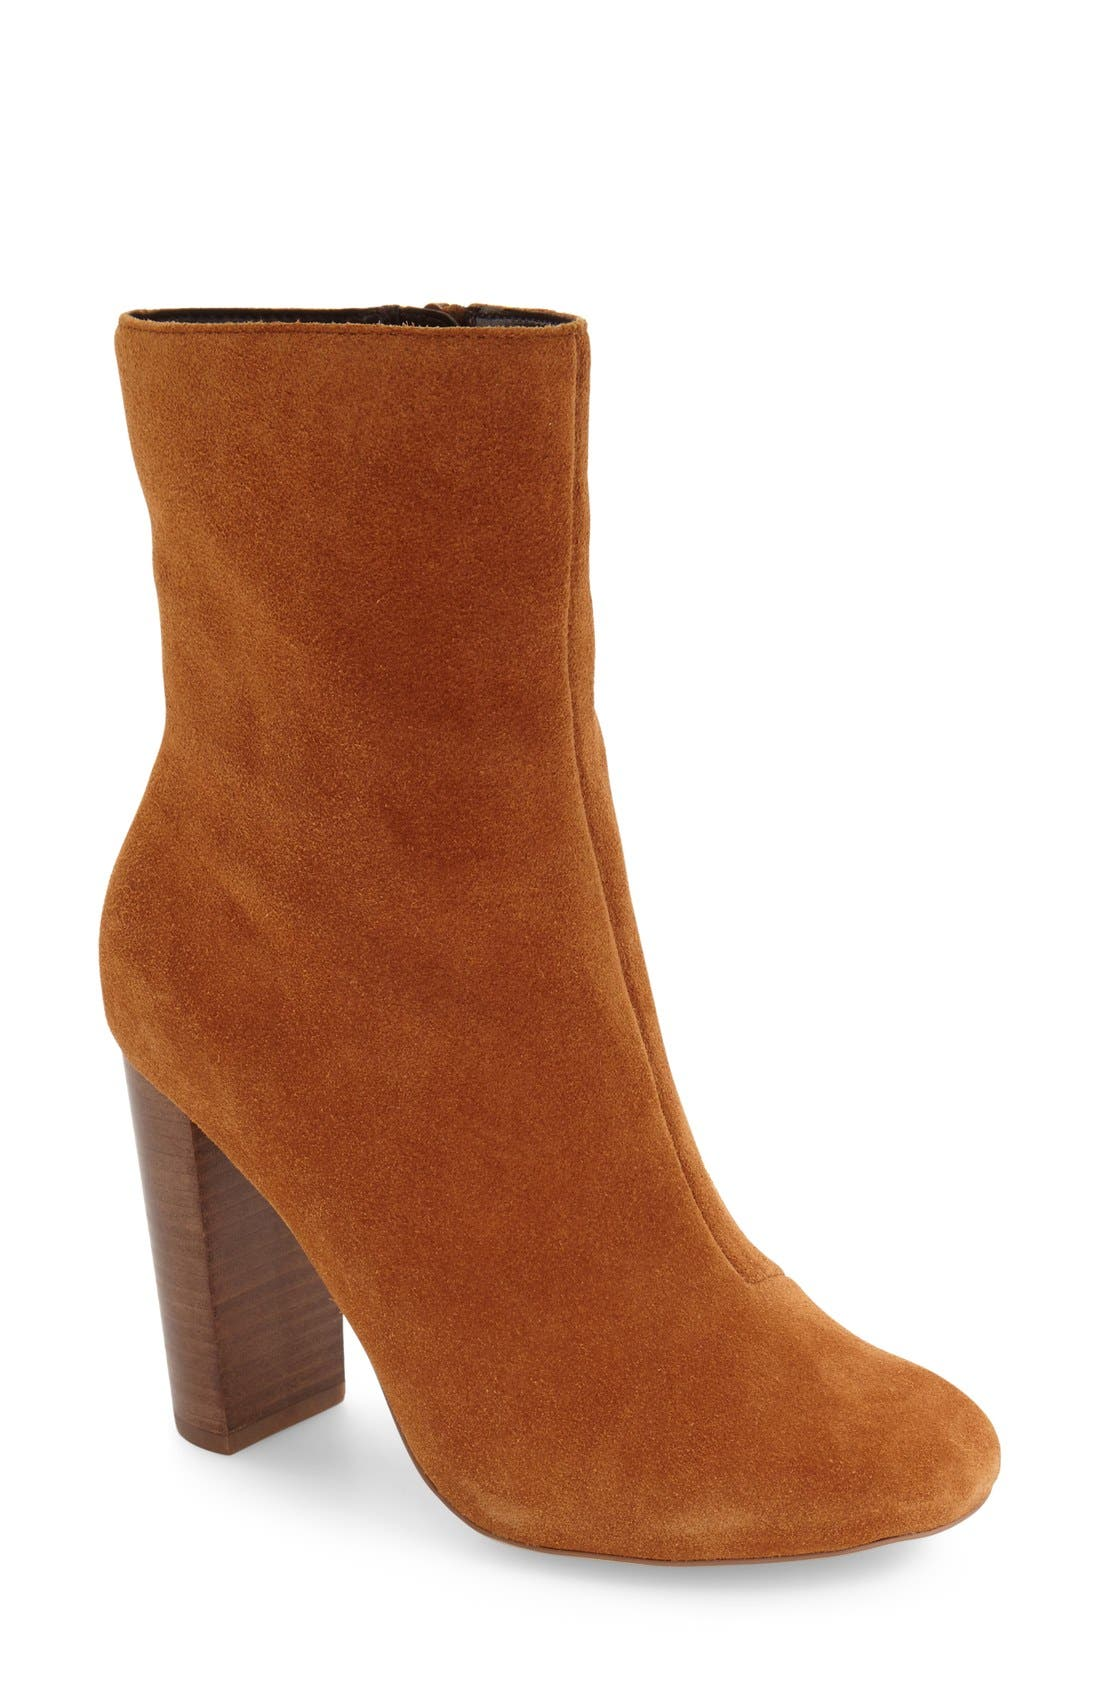 Alternate Image 1 Selected - Sole Society Veronica Bootie (Women)